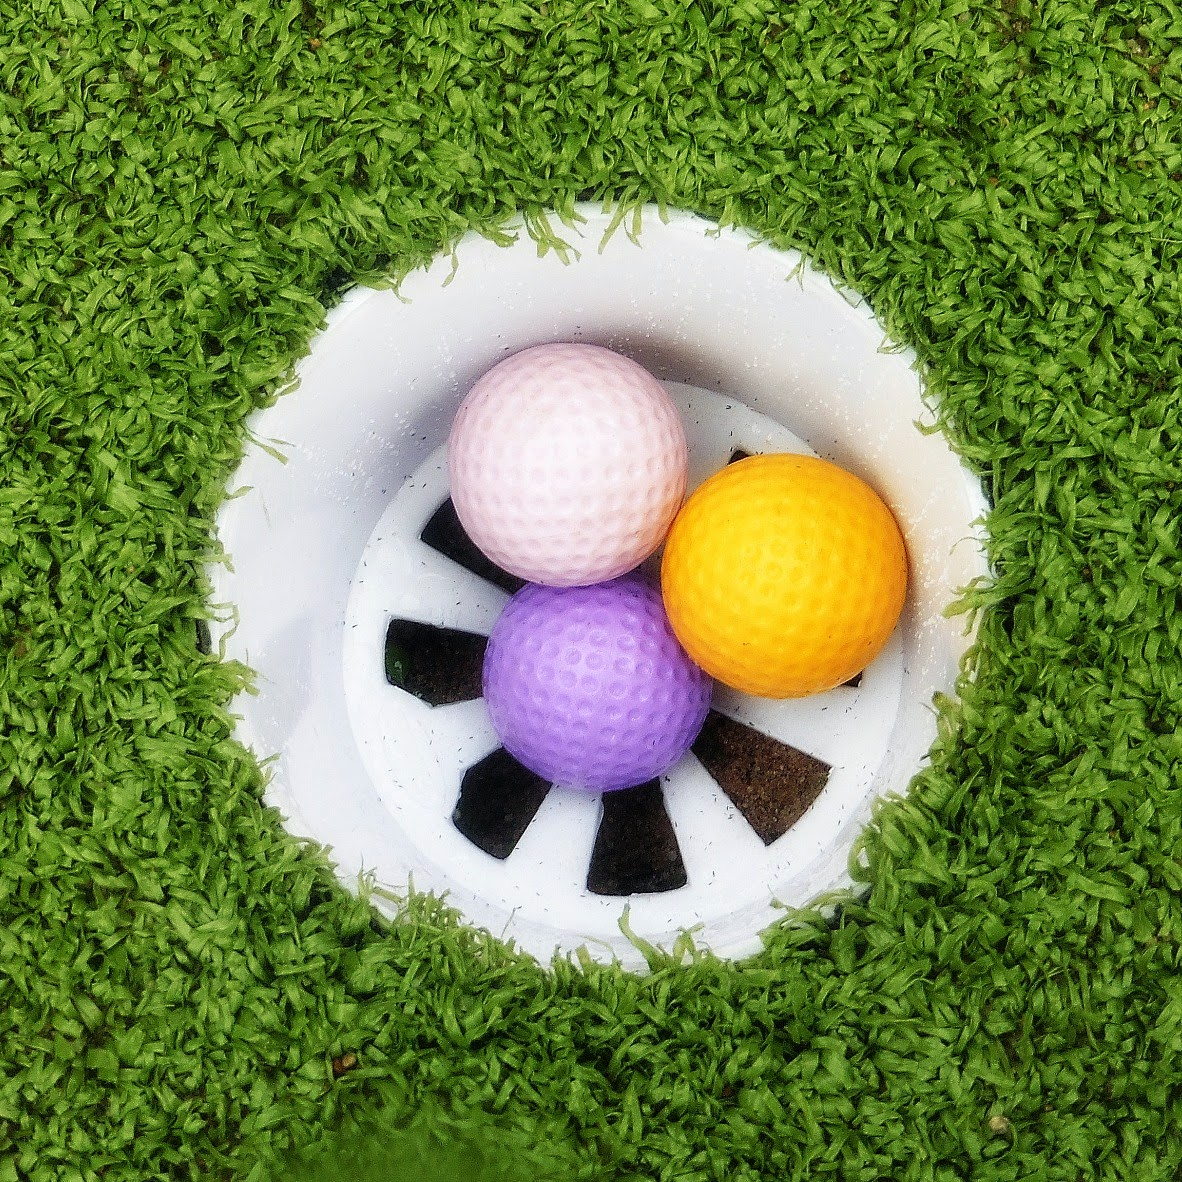 holes in one